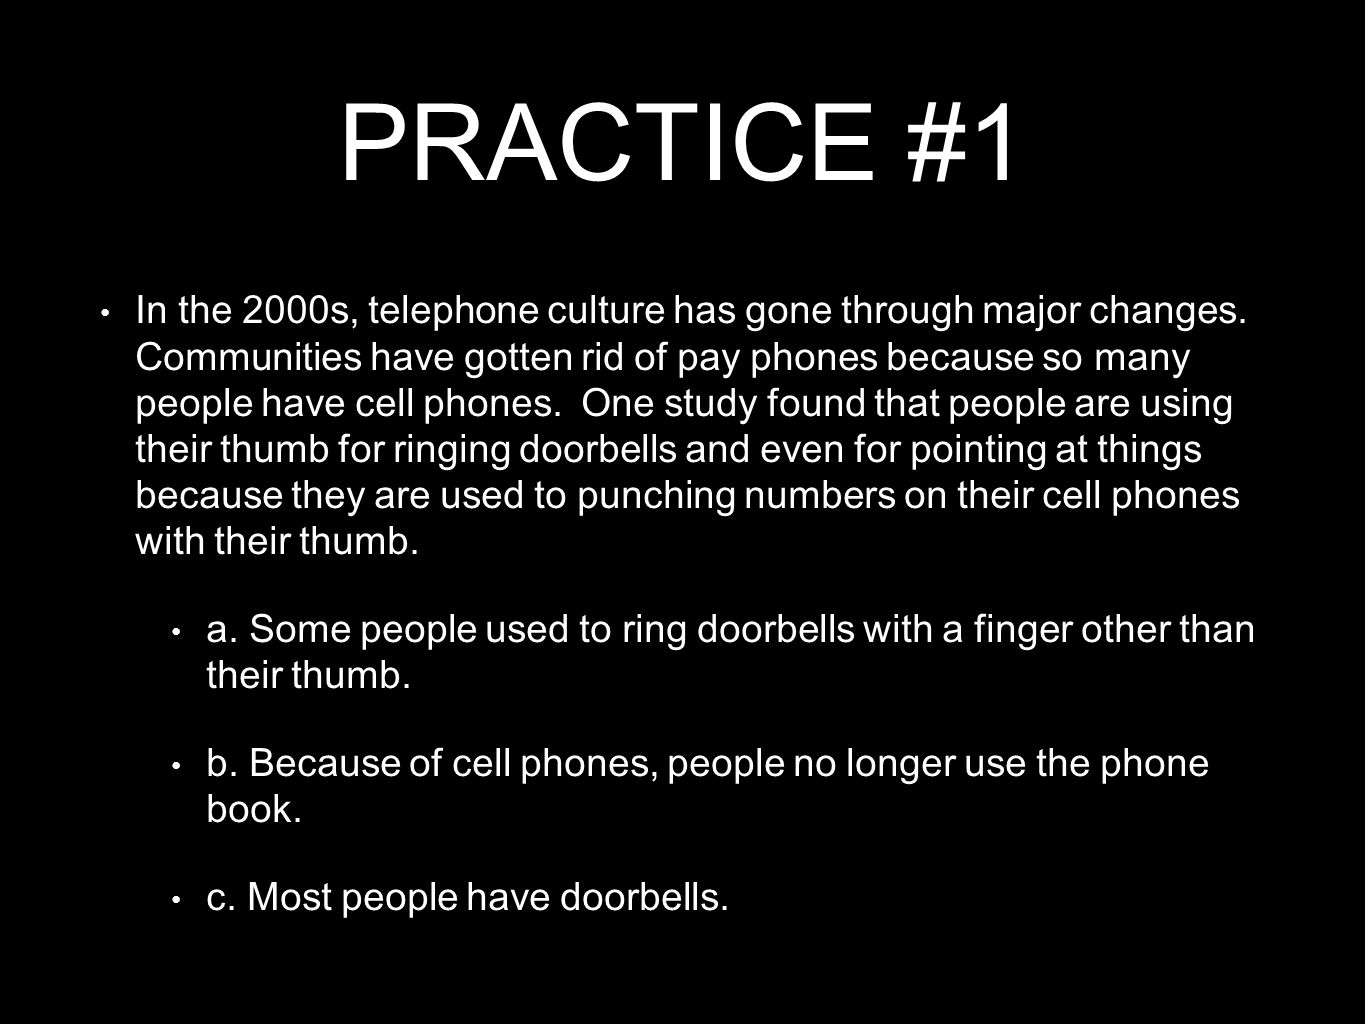 PRACTICE #1 In the 2000s, telephone culture has gone through major changes. Communities have gotten rid of pay phones because so many people have cell